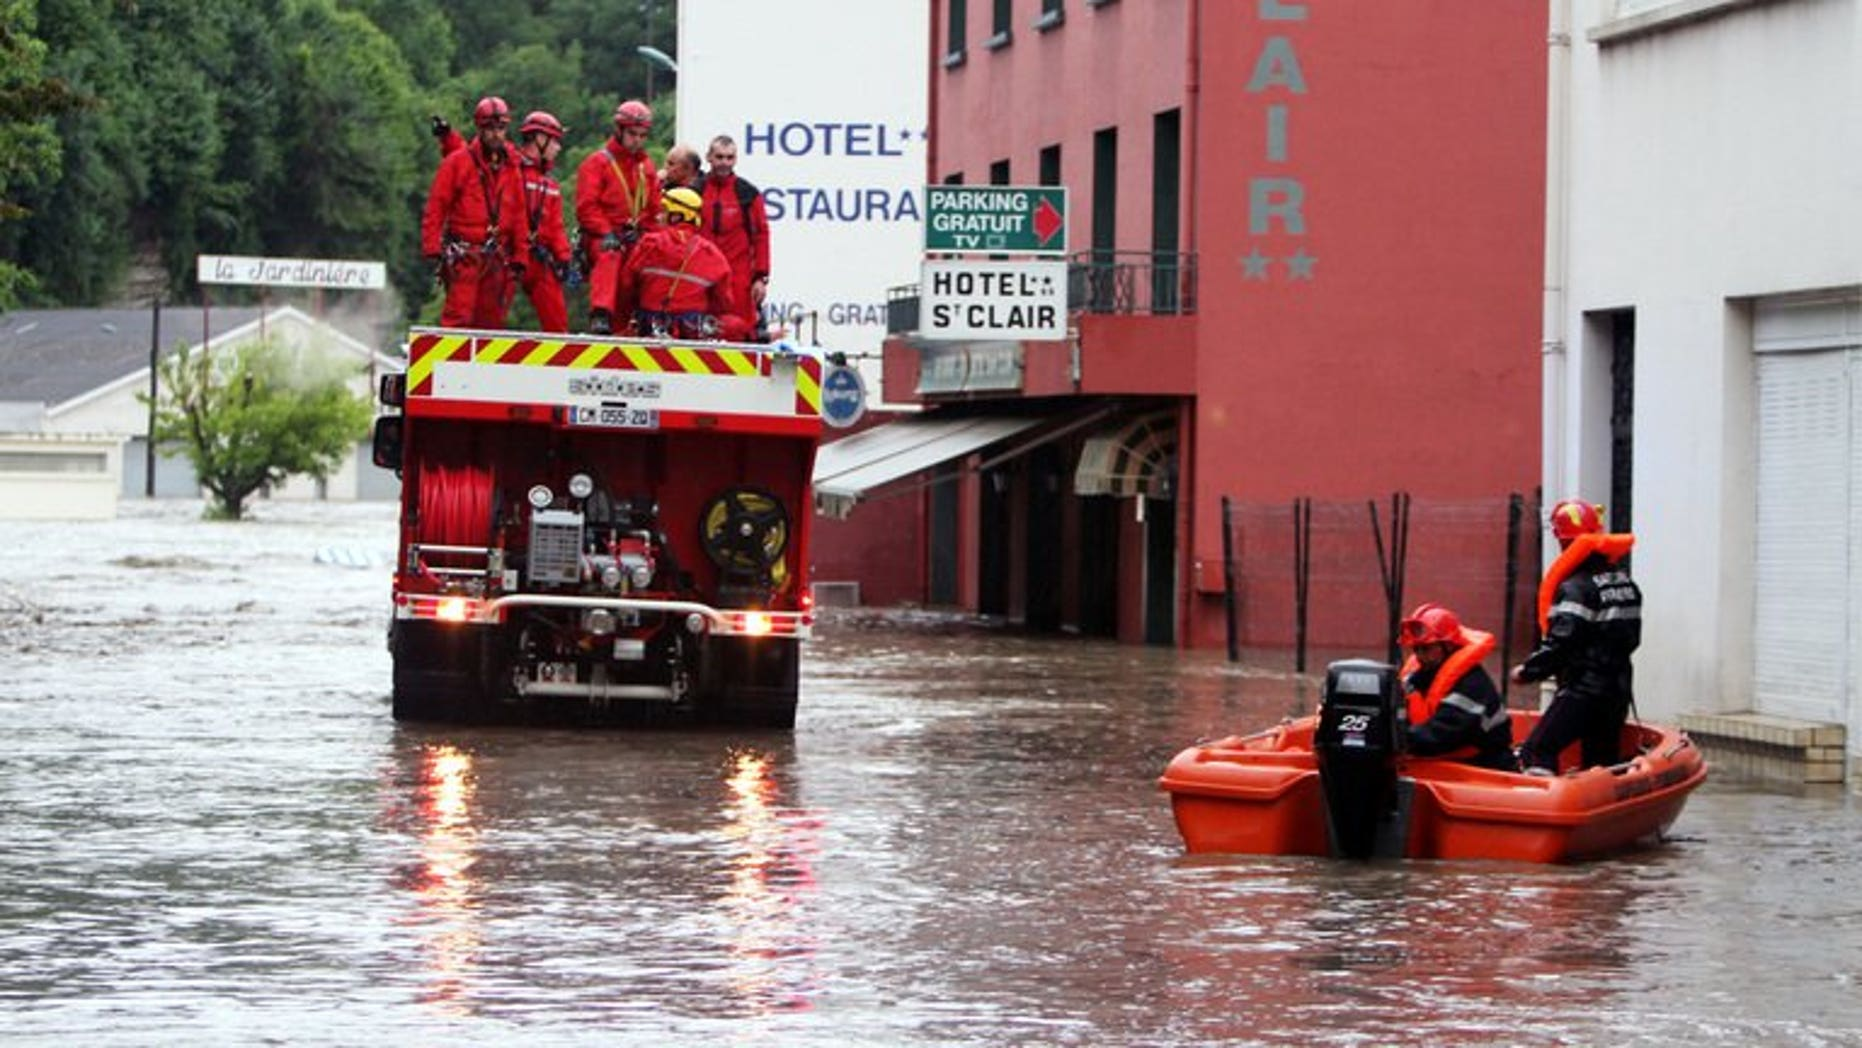 Firemen are at work in Lourdes where the Gave de Pau, the river passing through the town, flooded some pilgrimage areas on June 18, 2013. Flash floods in southwestern France killed an elderly woman as the inundated grotto at the Roman Catholic pilgrimage site of Lourdes remained closed for a second day